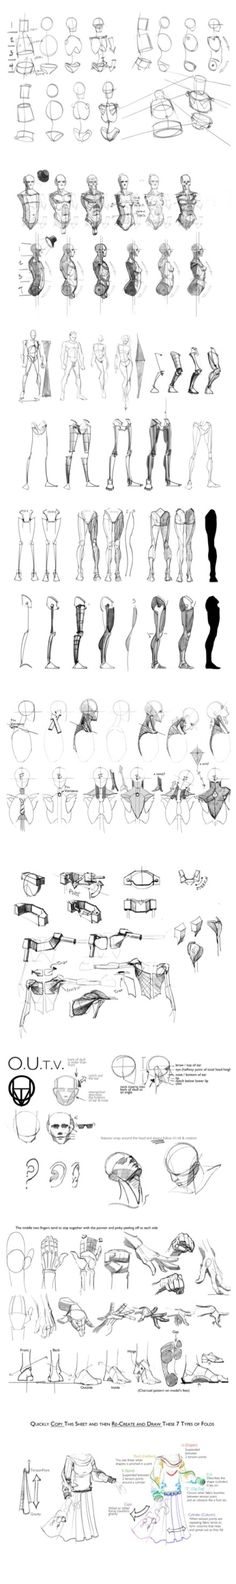 Anatomy Drawing Tutorial Guide Reference How To Draw Anime Master Anime Ecchi Picture Wallpapers… Anatomy Sketches, Anatomy Drawing, Anatomy Art, Human Anatomy, Zbrush Anatomy, Figure Drawing Reference, Body Reference, Anatomy Reference, Human Drawing